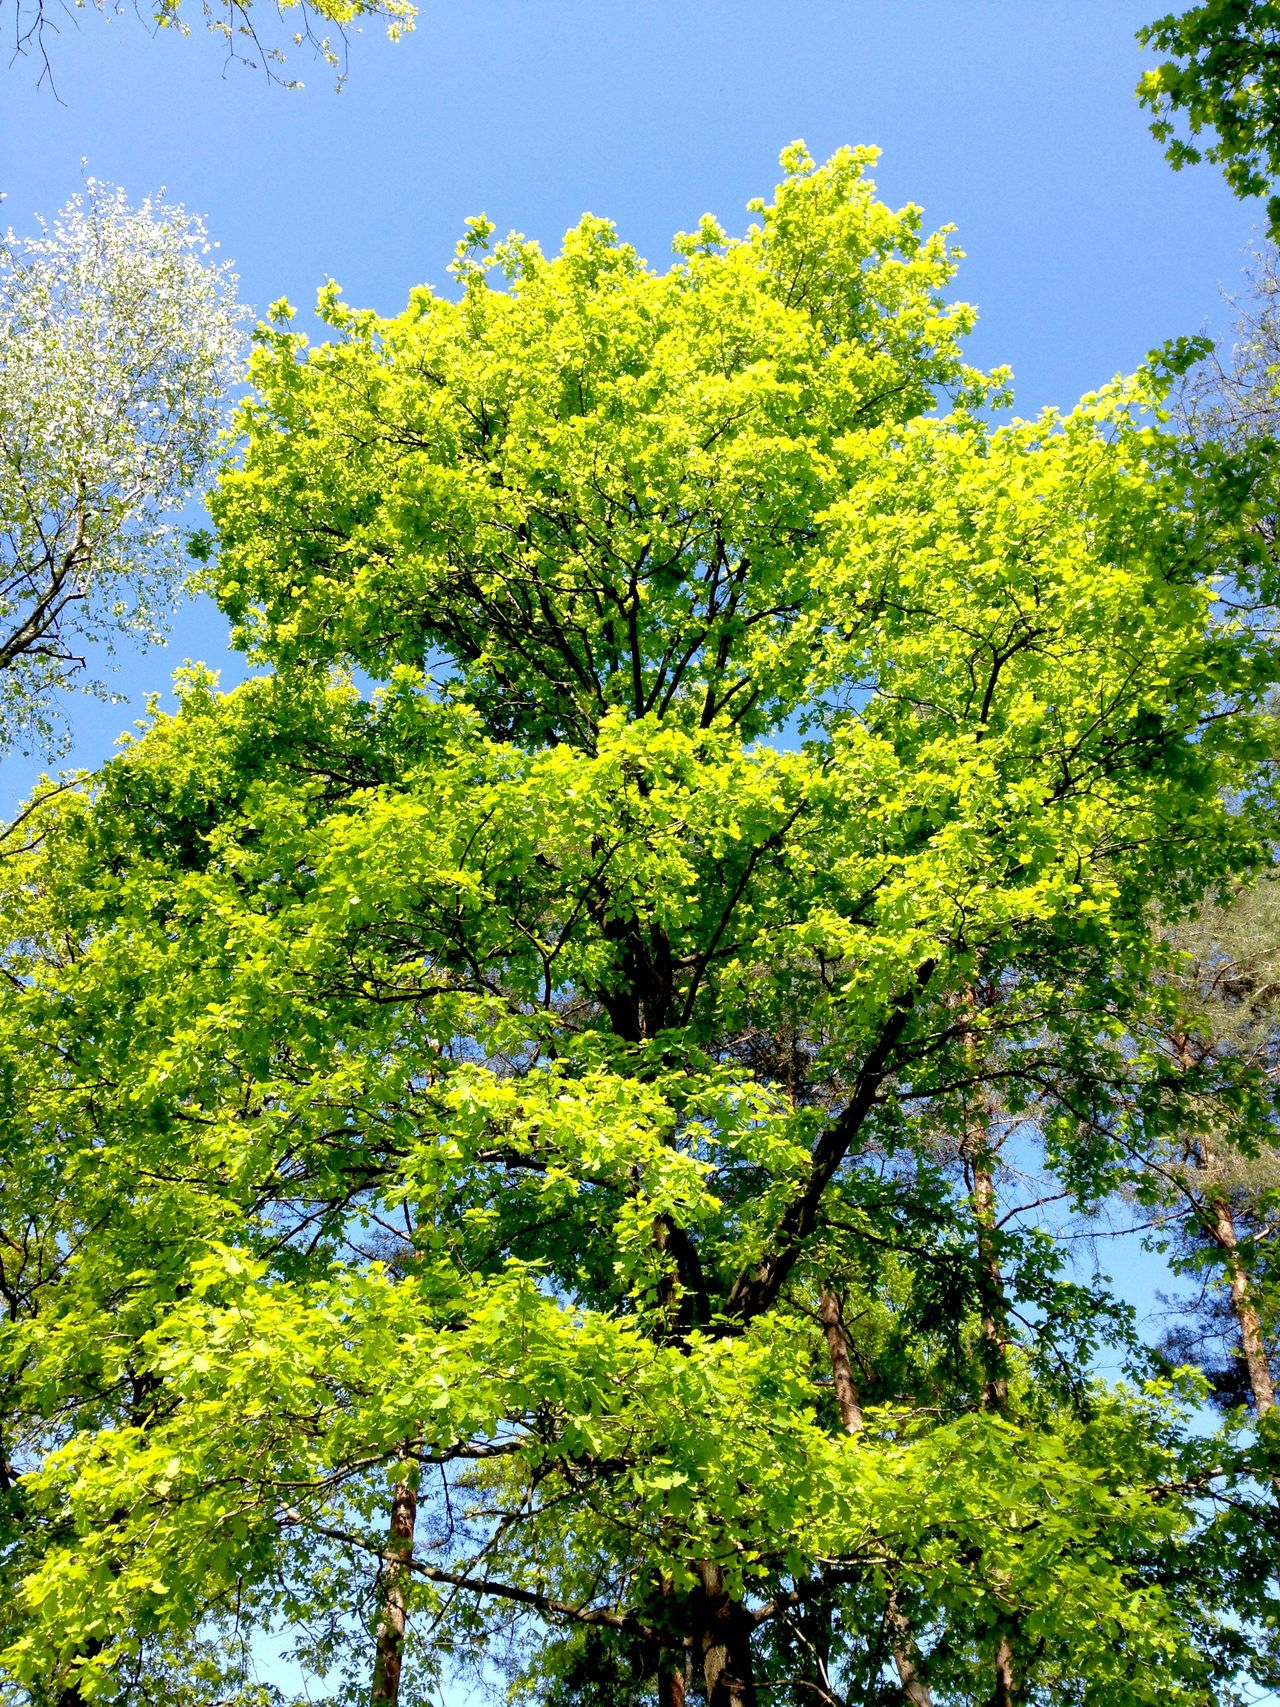 Trees Leaves Green Blue Sky Nature